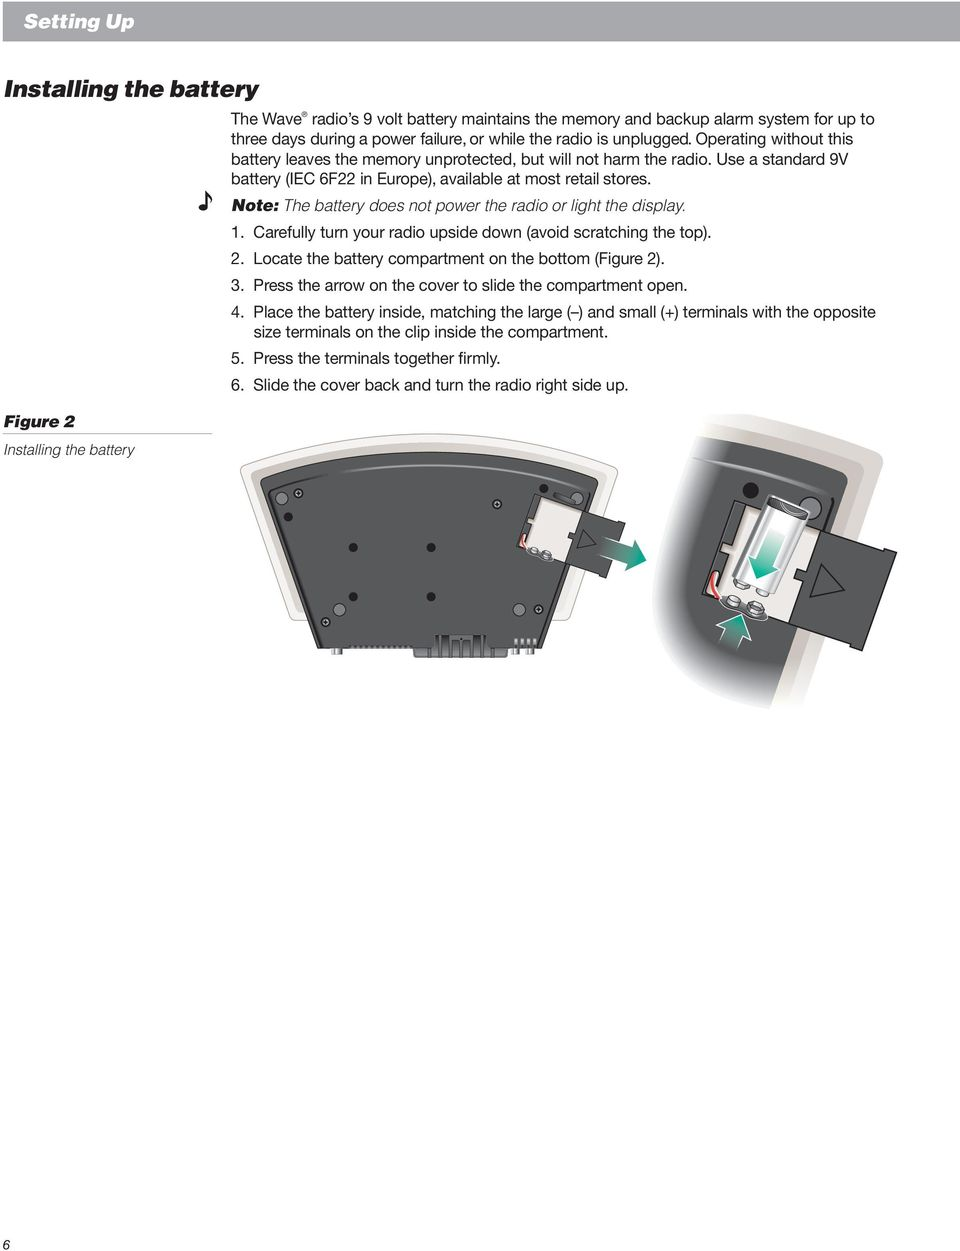 Note: The battery does not power the radio or light the display. 1. Carefully turn your radio upside down (avoid scratching the top). 2. Locate the battery compartment on the bottom (Figure 2). 3.